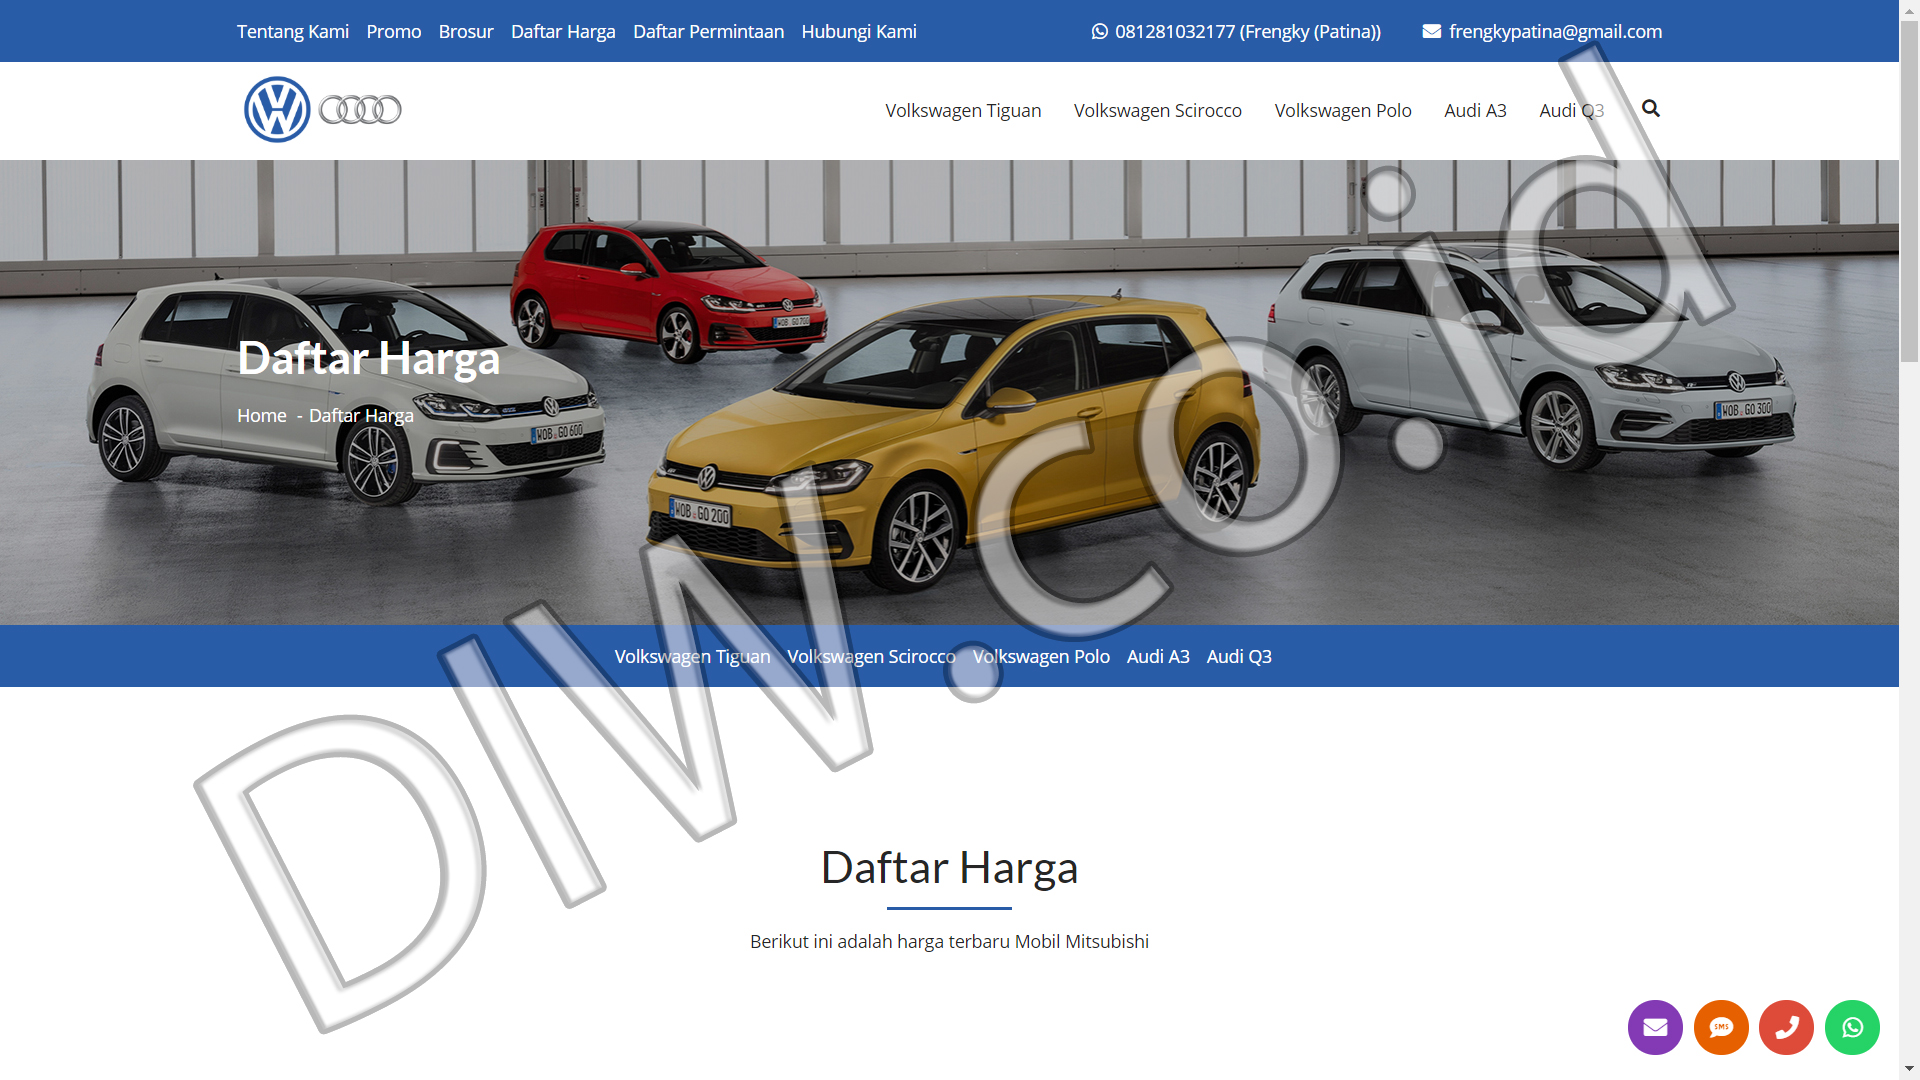 Portfolio 5 - VW Audi BSD Jakarta - Andri Sunardi - Freelancer - Web Developer - CEO DIW.co.id